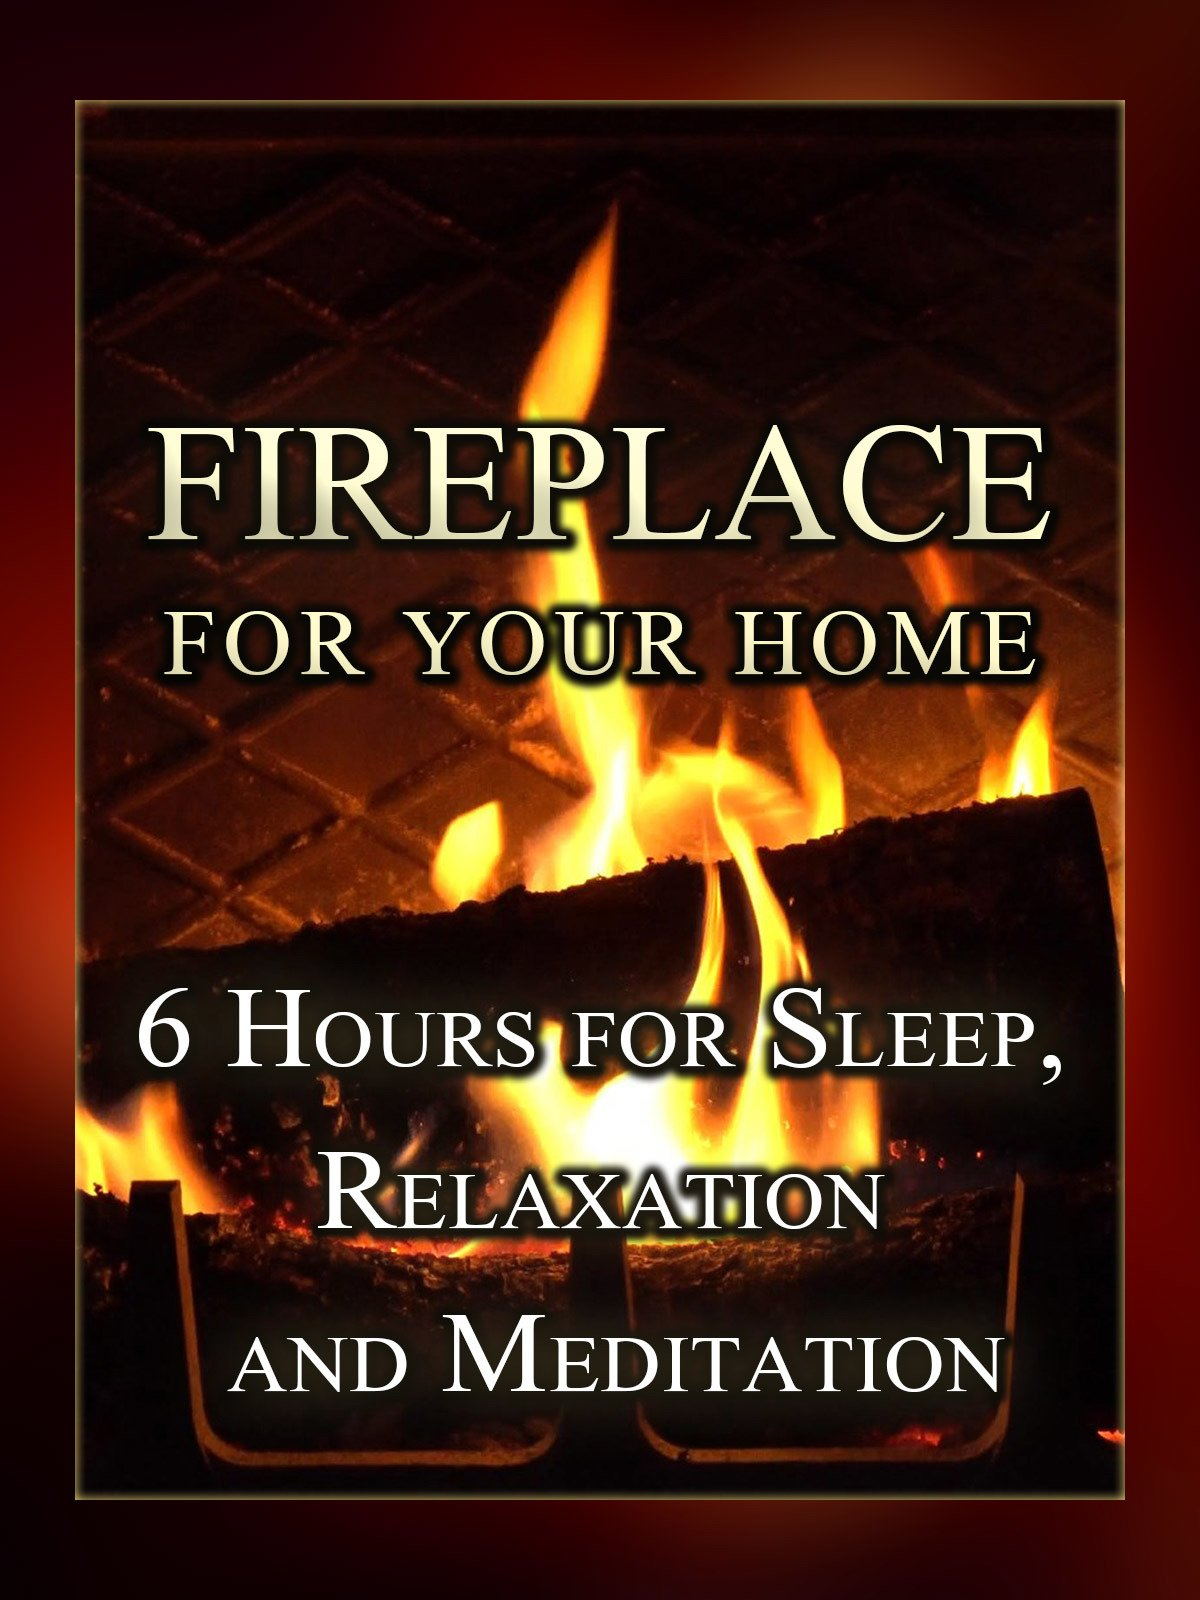 Fireplace for your Home, 6 hours for sleep, relaxation and meditation